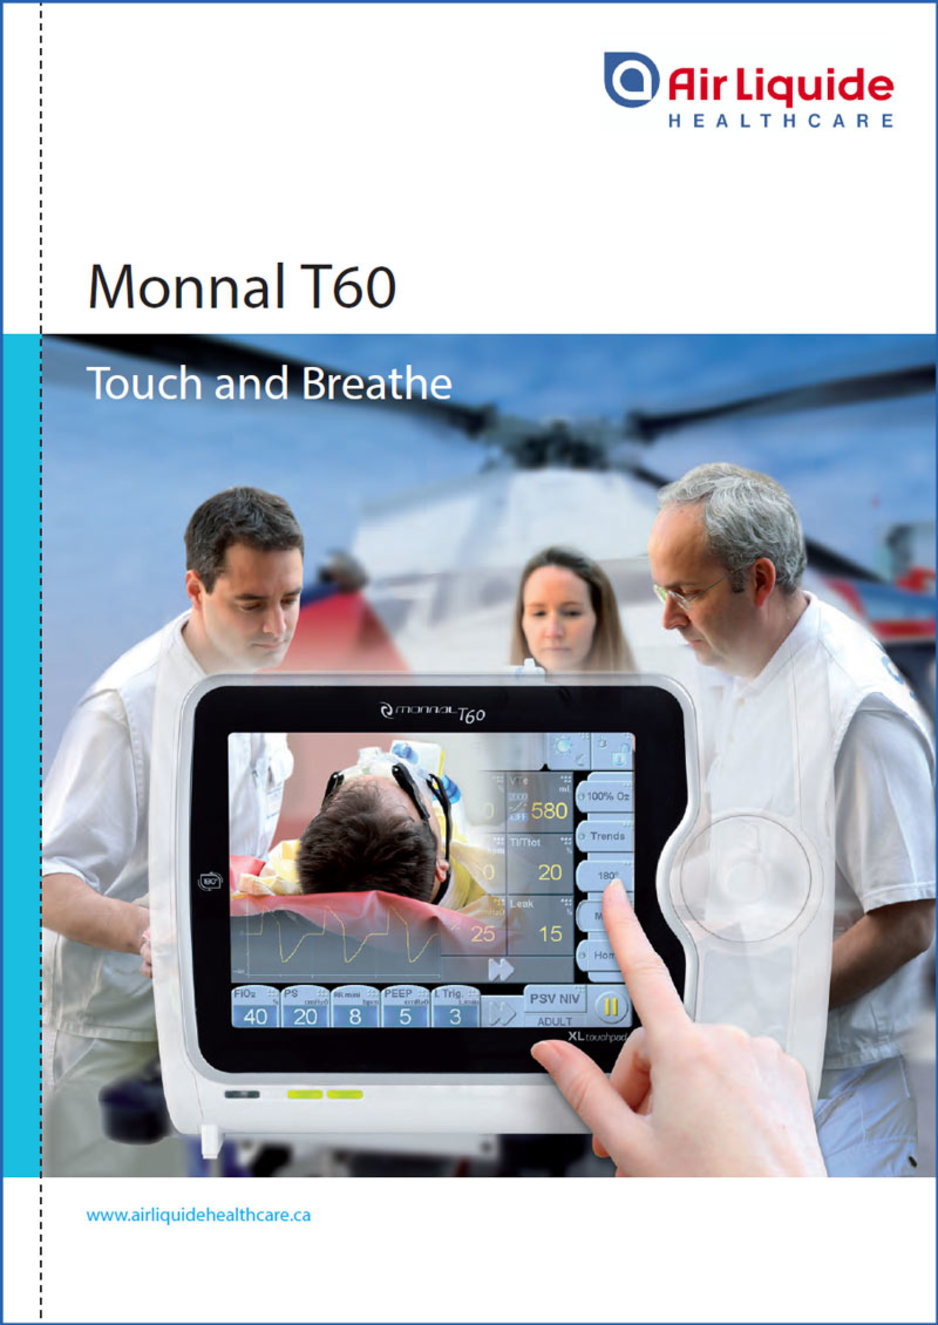 Learn more about the Monnal T60 ventilator brochure